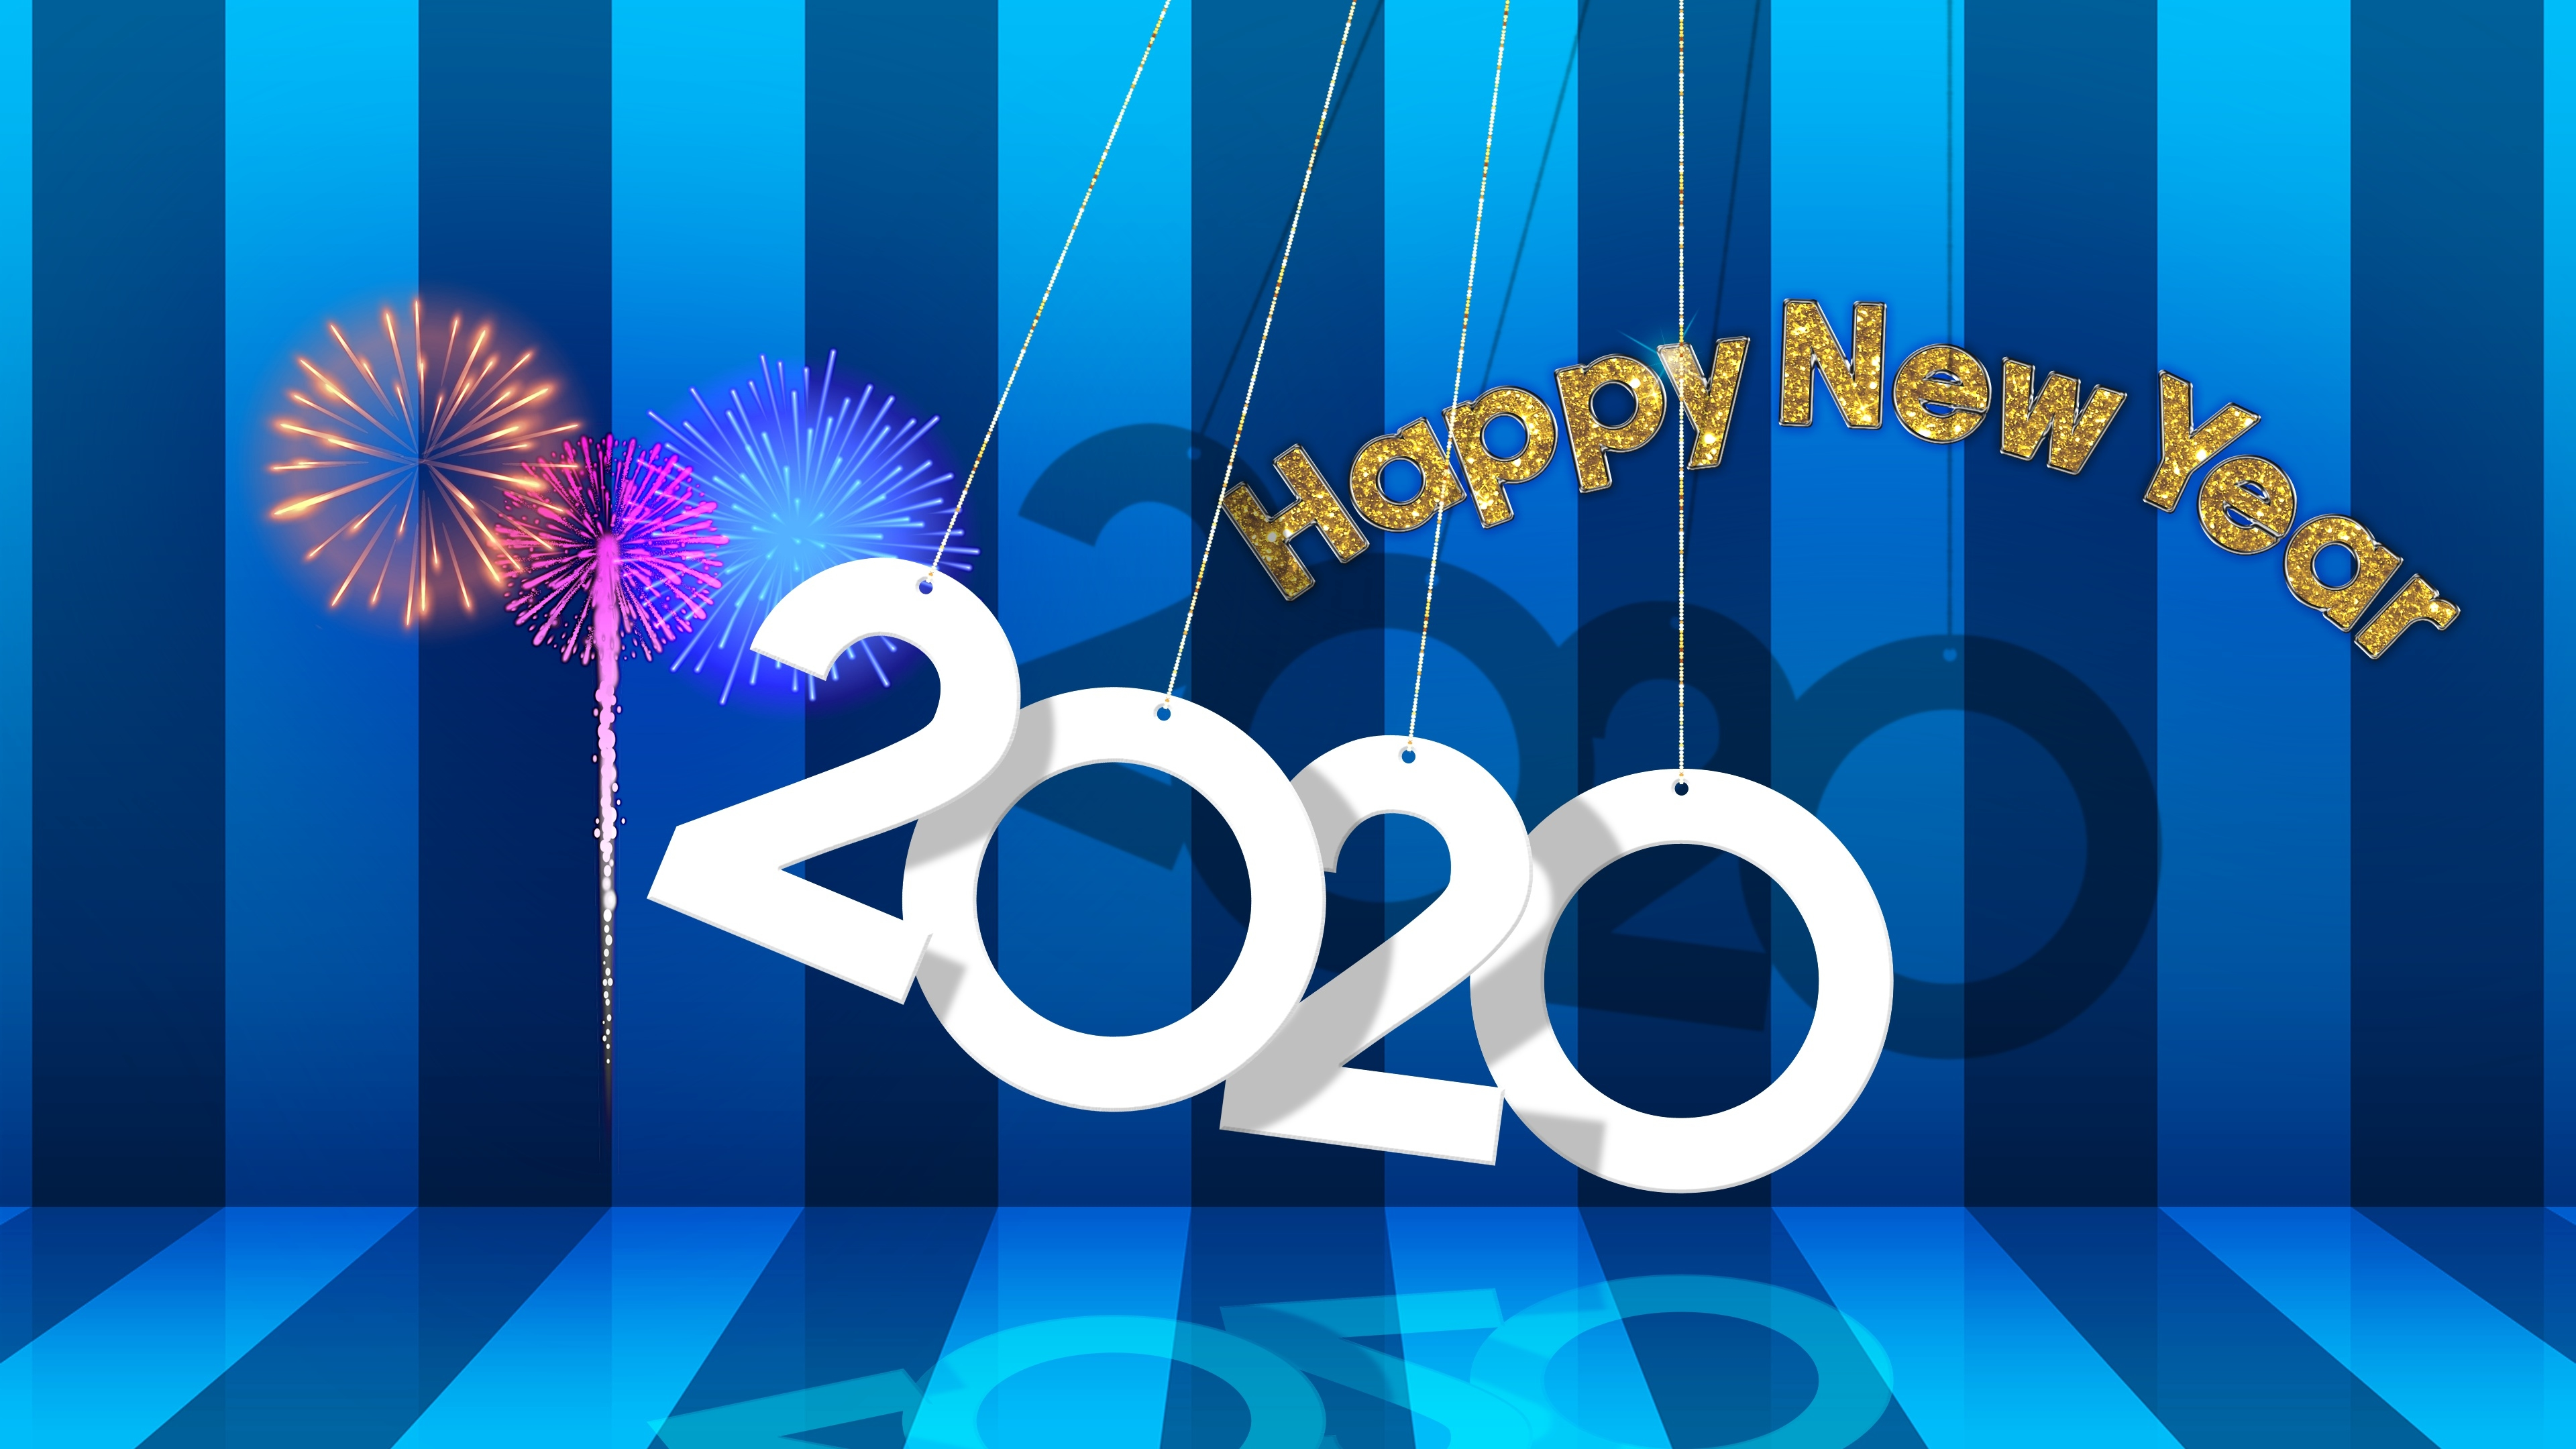 New Year 2020 Wallpaper HD Other 4K Wallpapers Images Photos 3840x2160